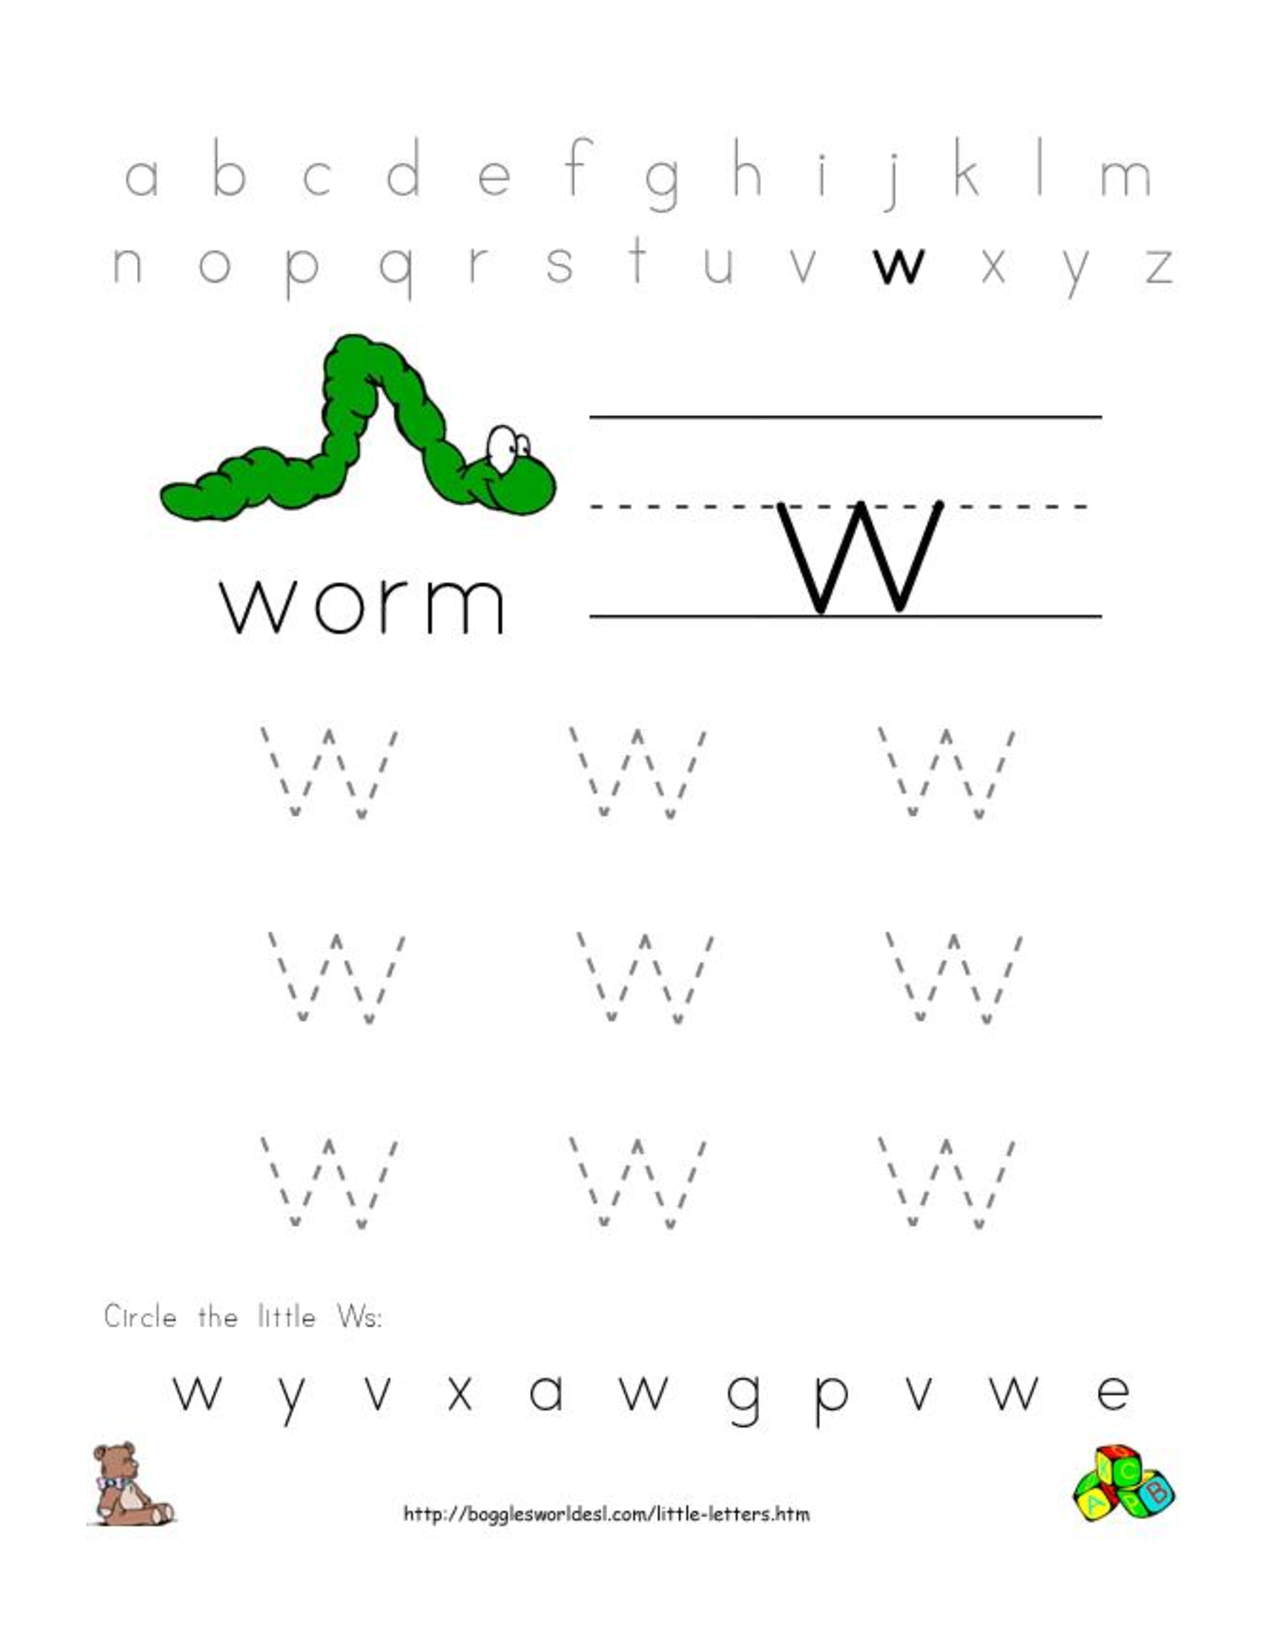 Worksheet Letter V Van